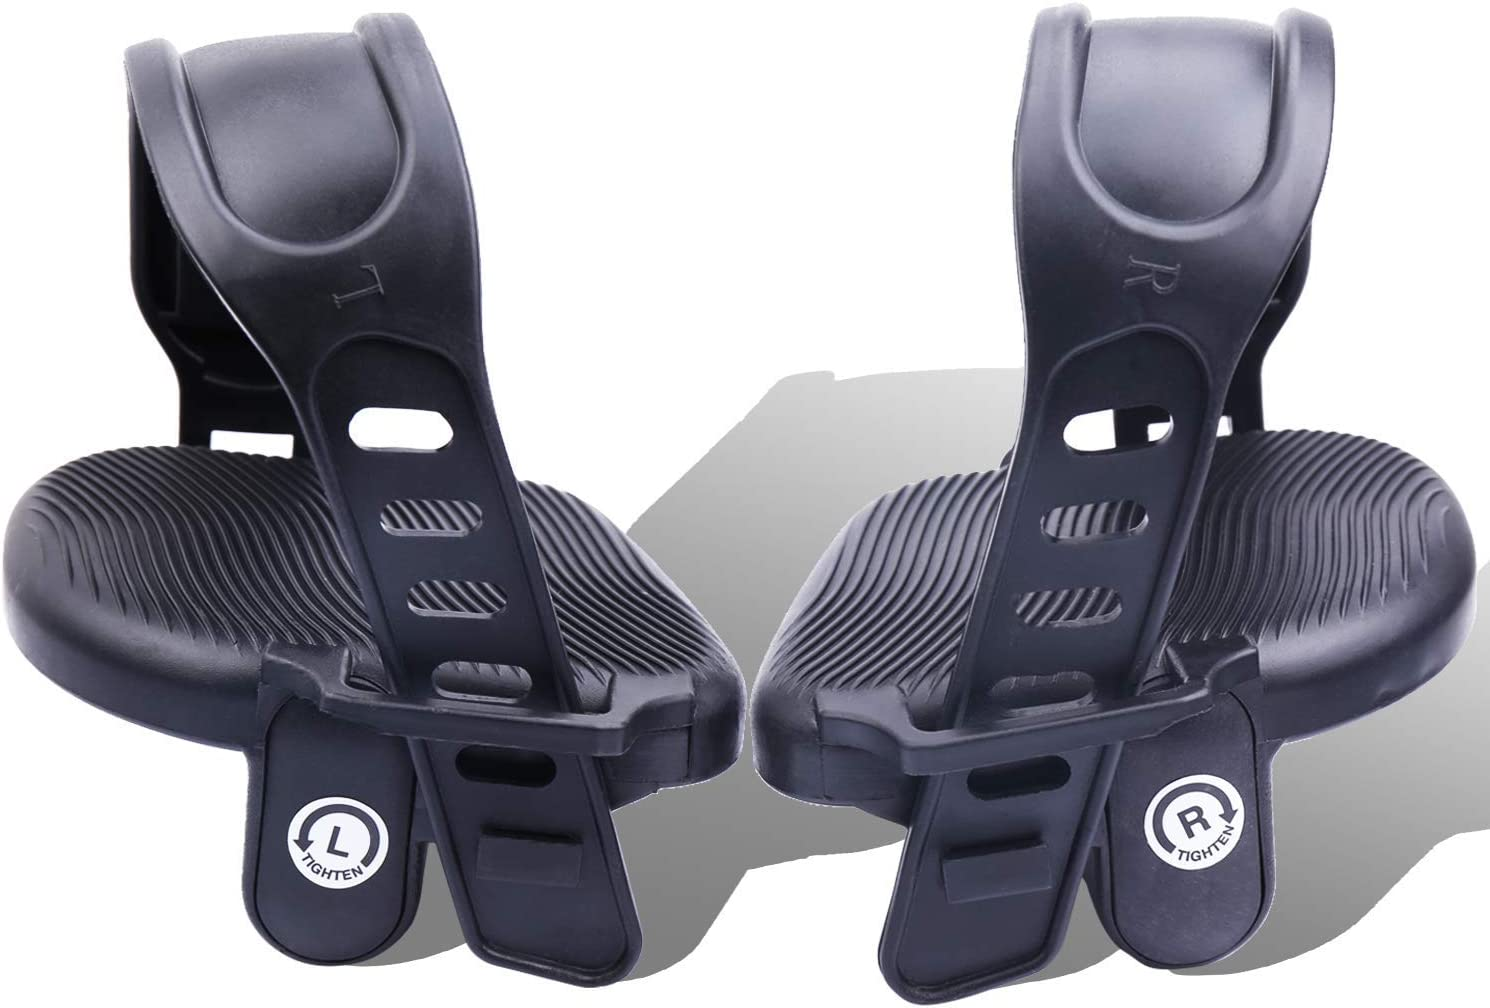 Universal 2er Bike Pedals Pedal Set Pedals Set for Bicycle with refekletoren